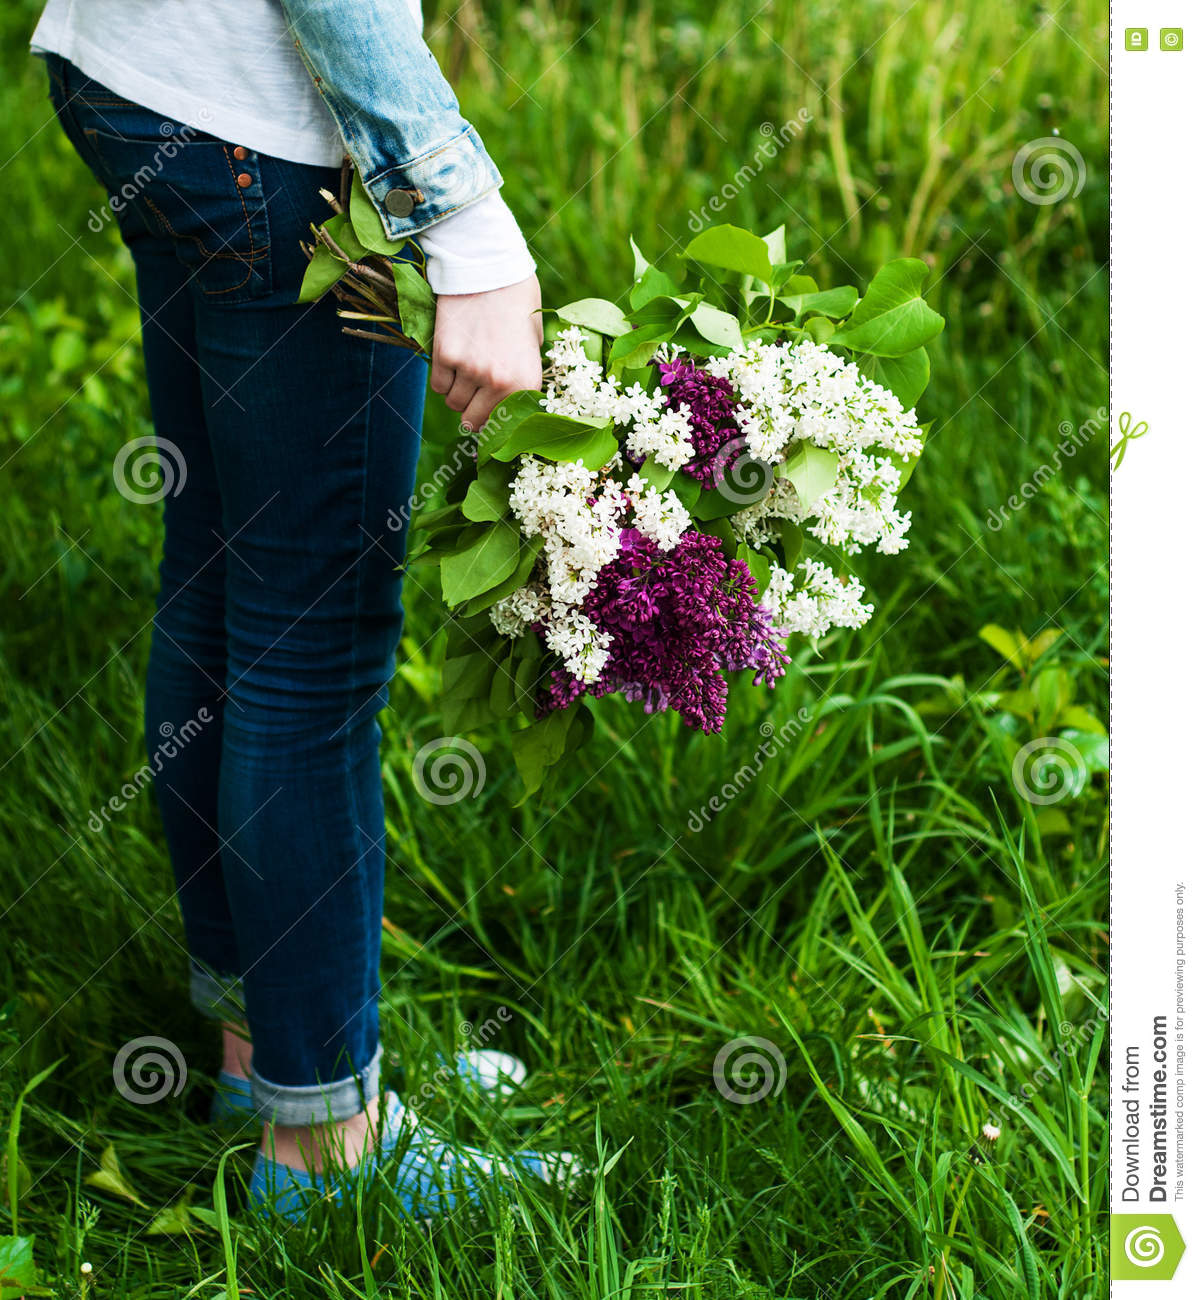 Blooming lilac flowers in hand